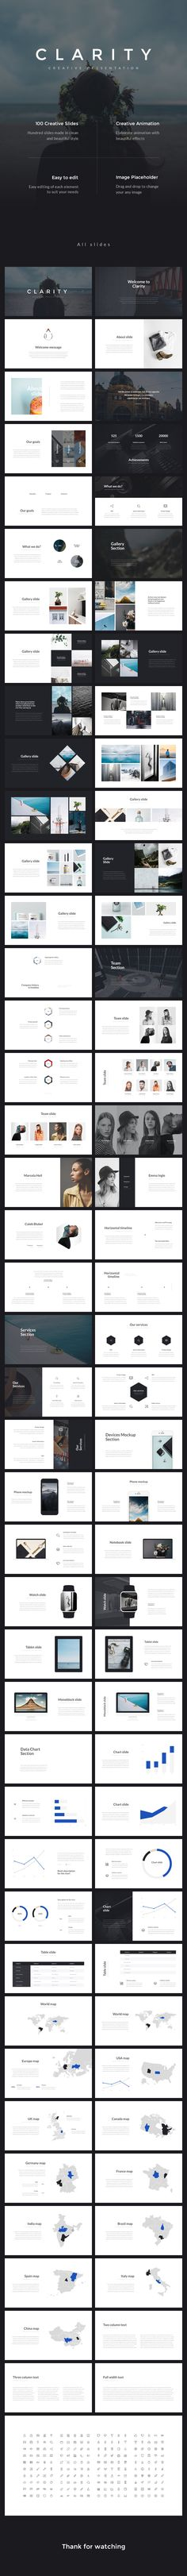 Clarity PowerPoint Presentation Template